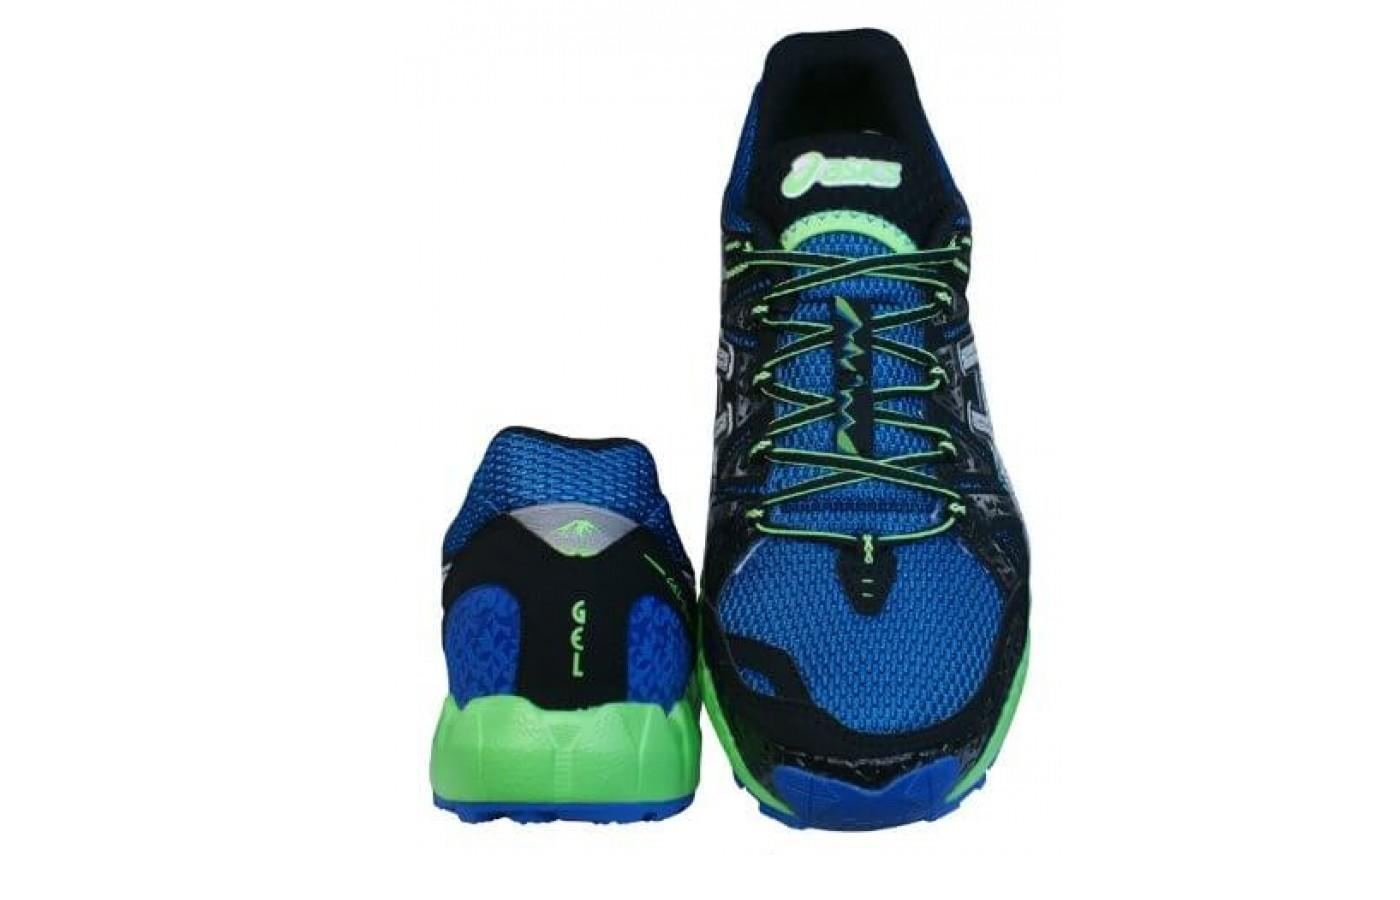 Upper is breathable yet protects your foot